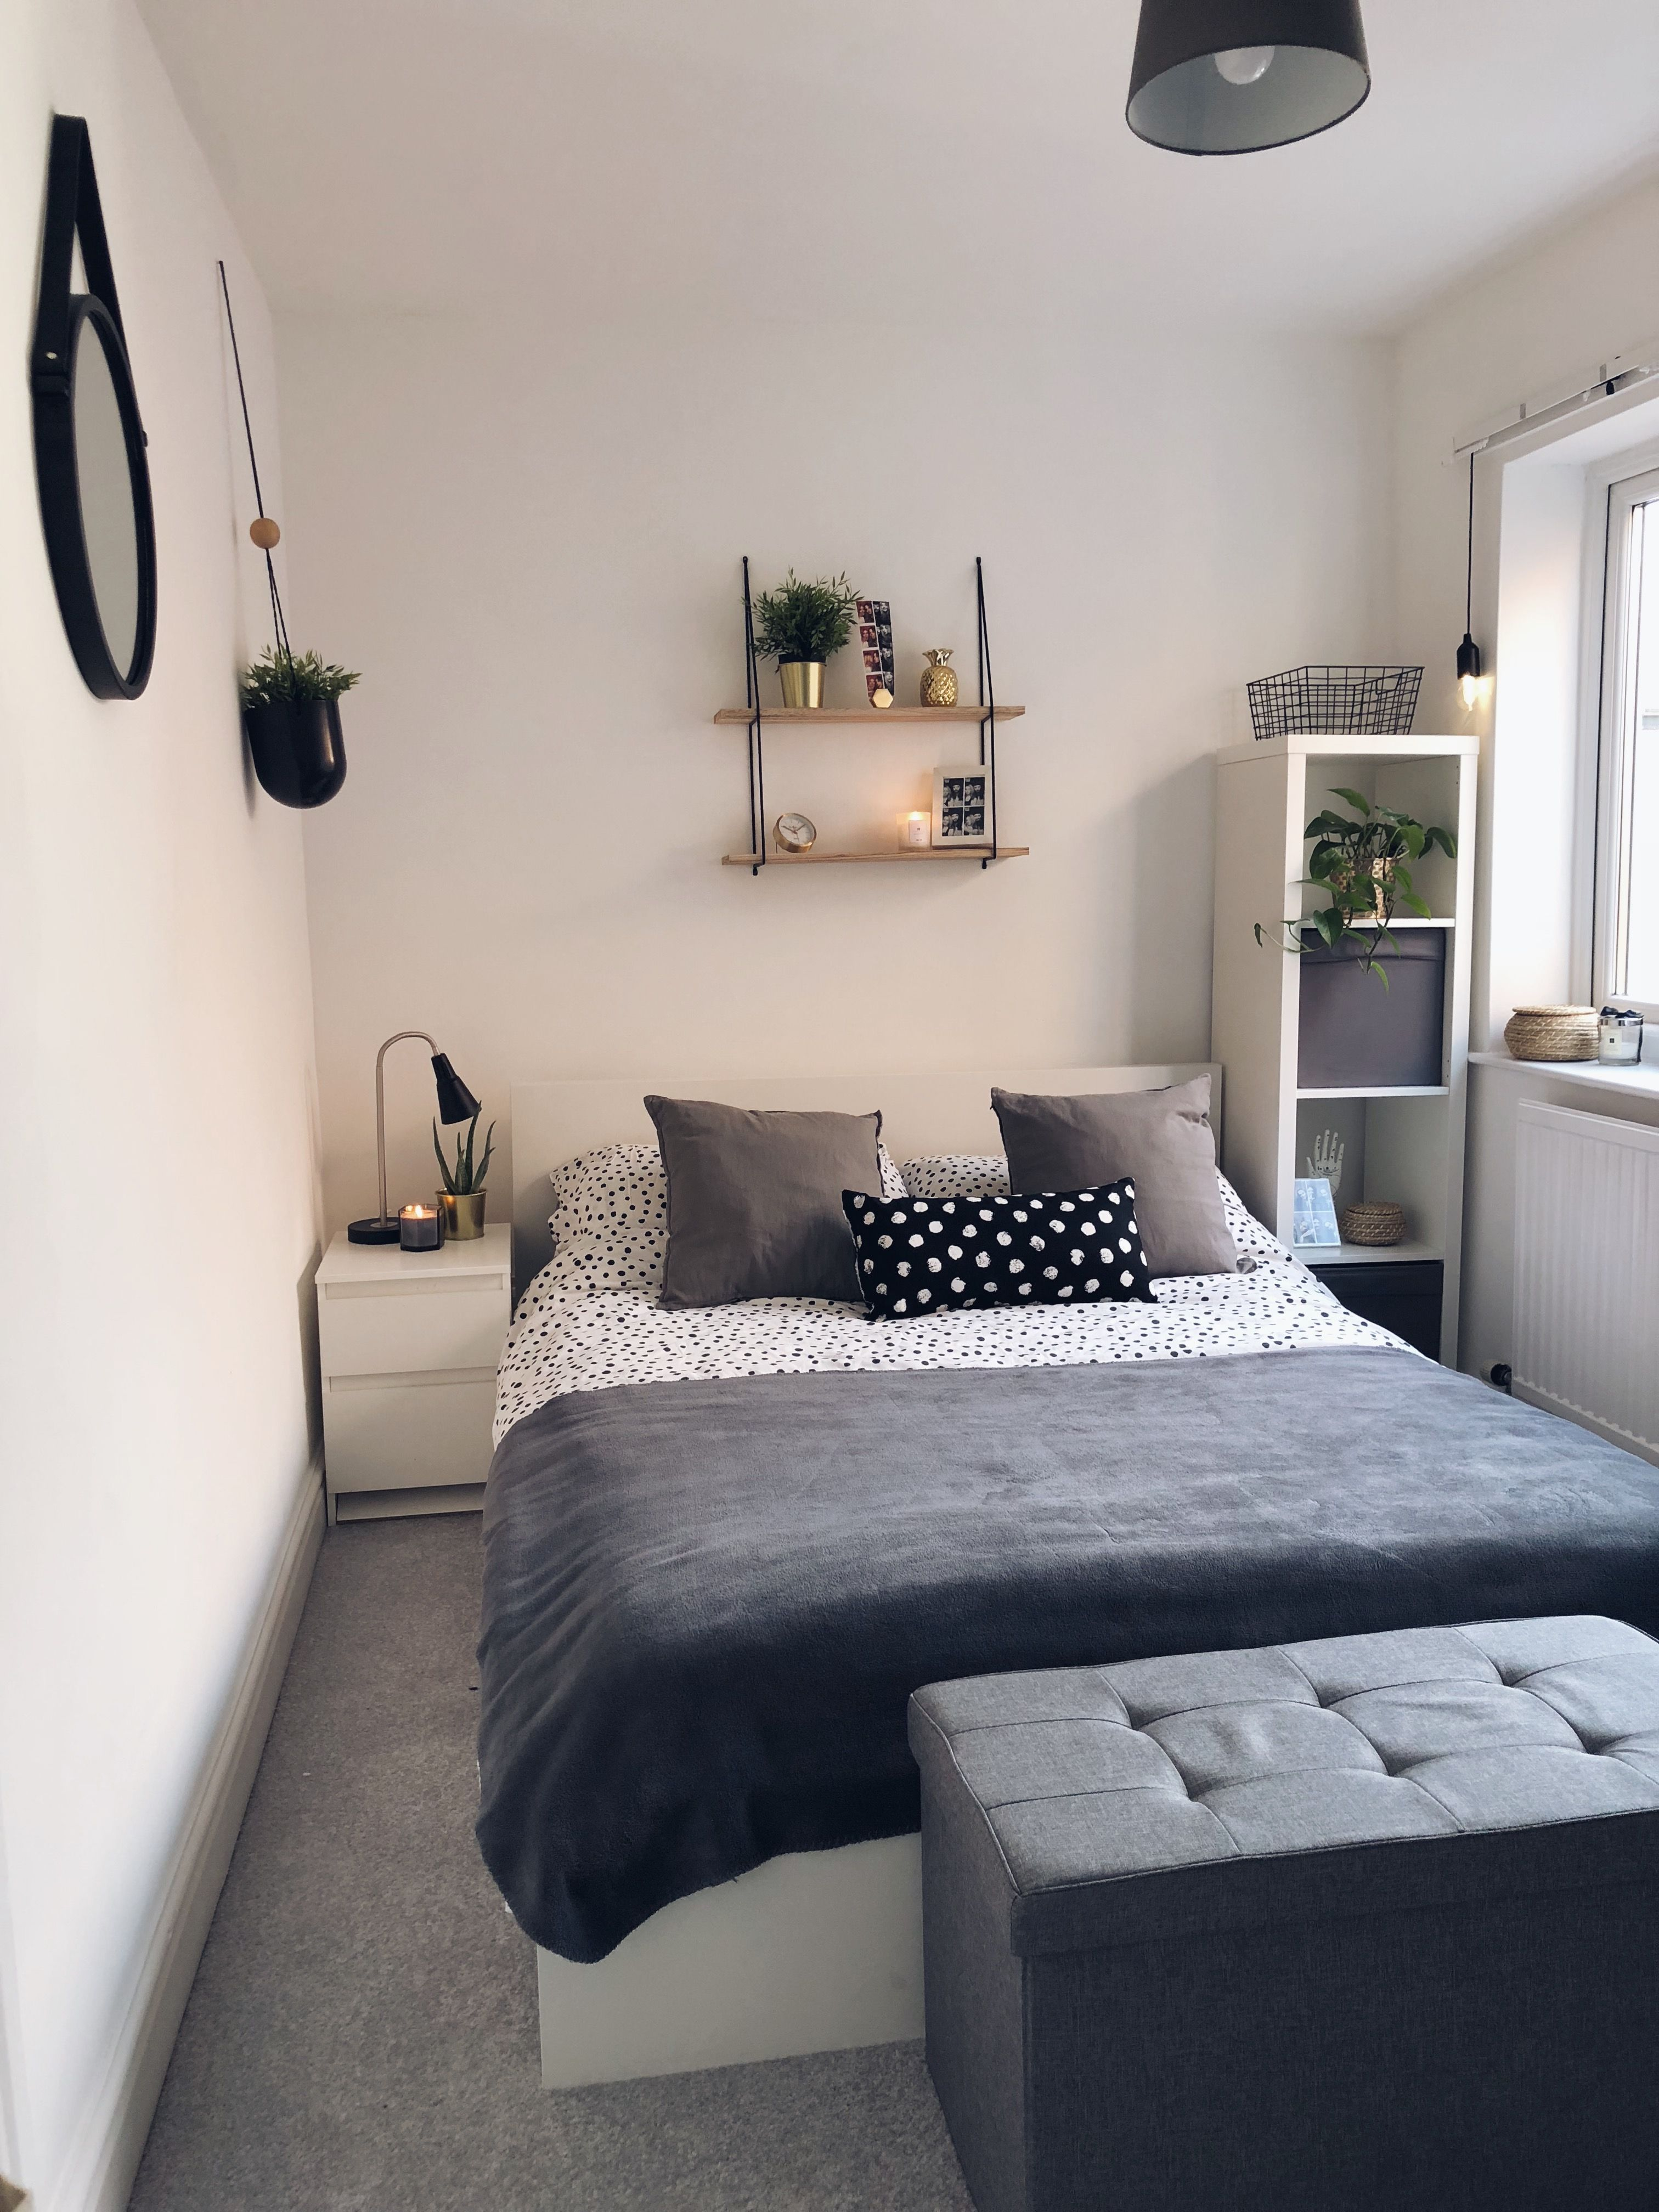 Bedroom Small Bedroom Decor Small Apartment Bedrooms Small